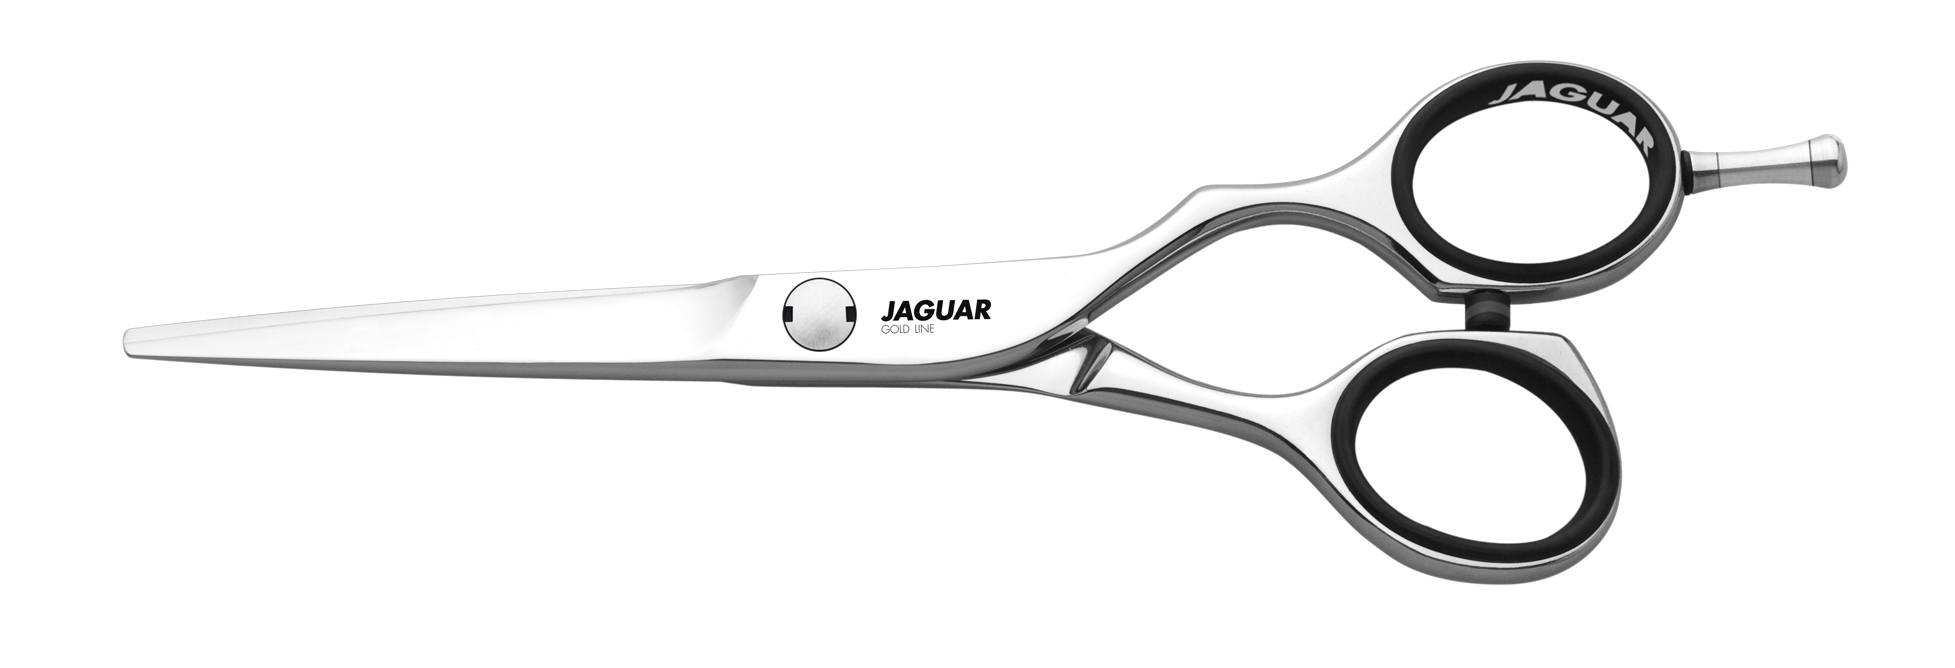 JAGUAR Ножницы Jaguar Diamond E 5,5'(14cm)GL jaguar j624 5 jaguar